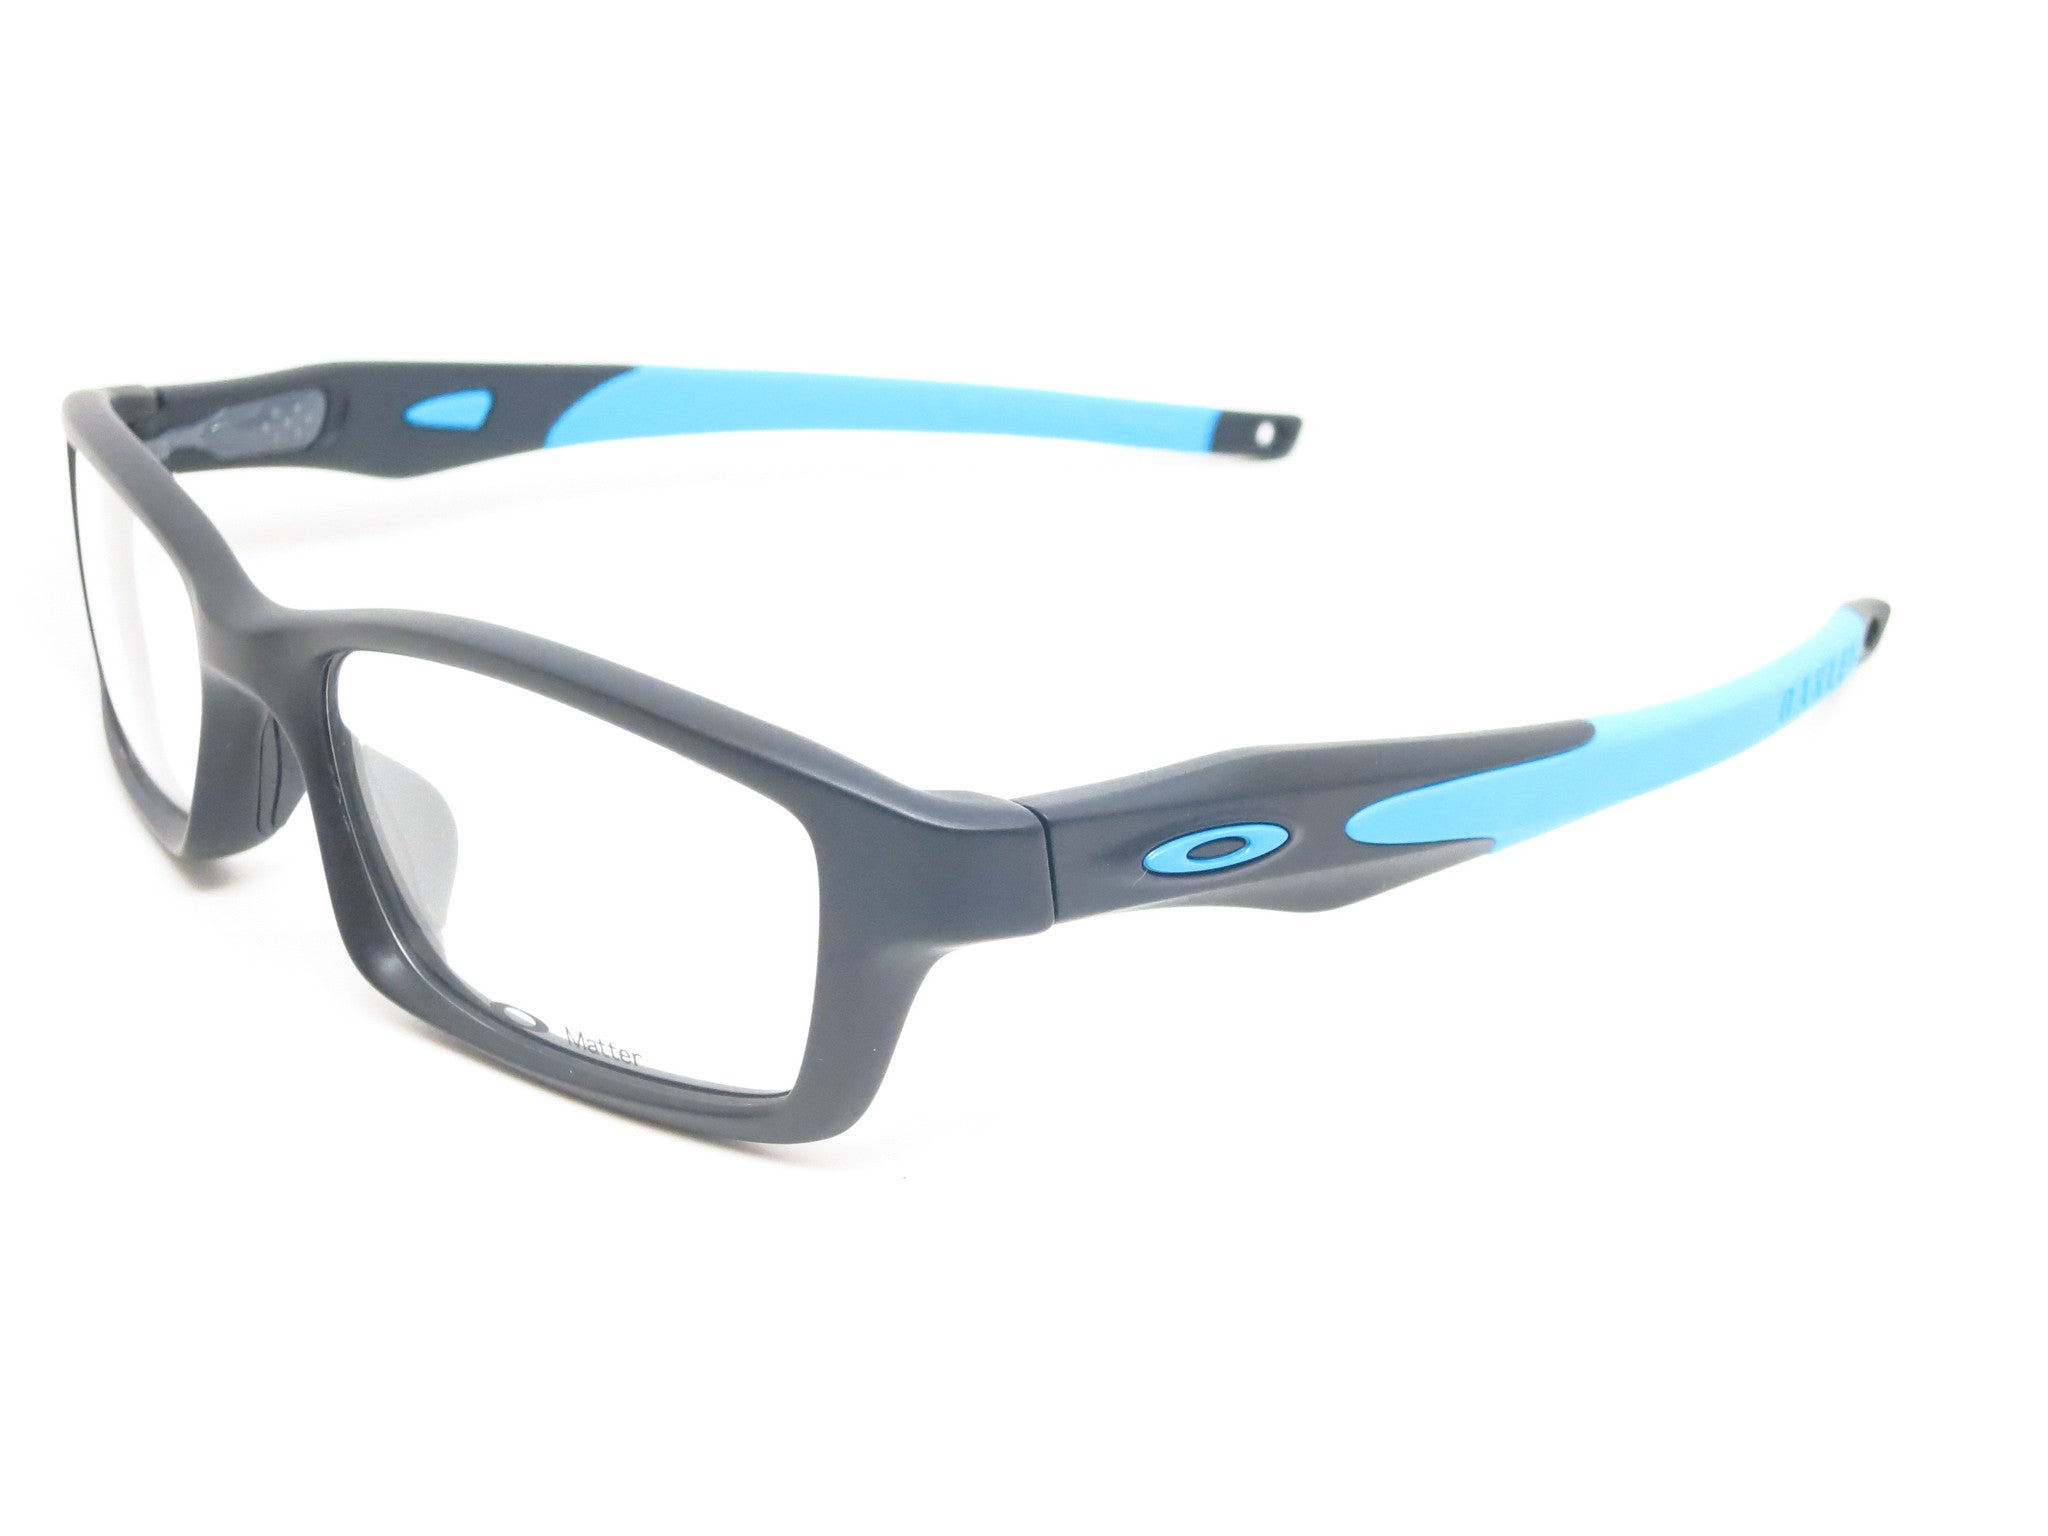 da92660cd7 Oakley Crosslink OX8027-0153 Satin Black   Sky Blue Eyeglasses - Eye Heart  Shades -